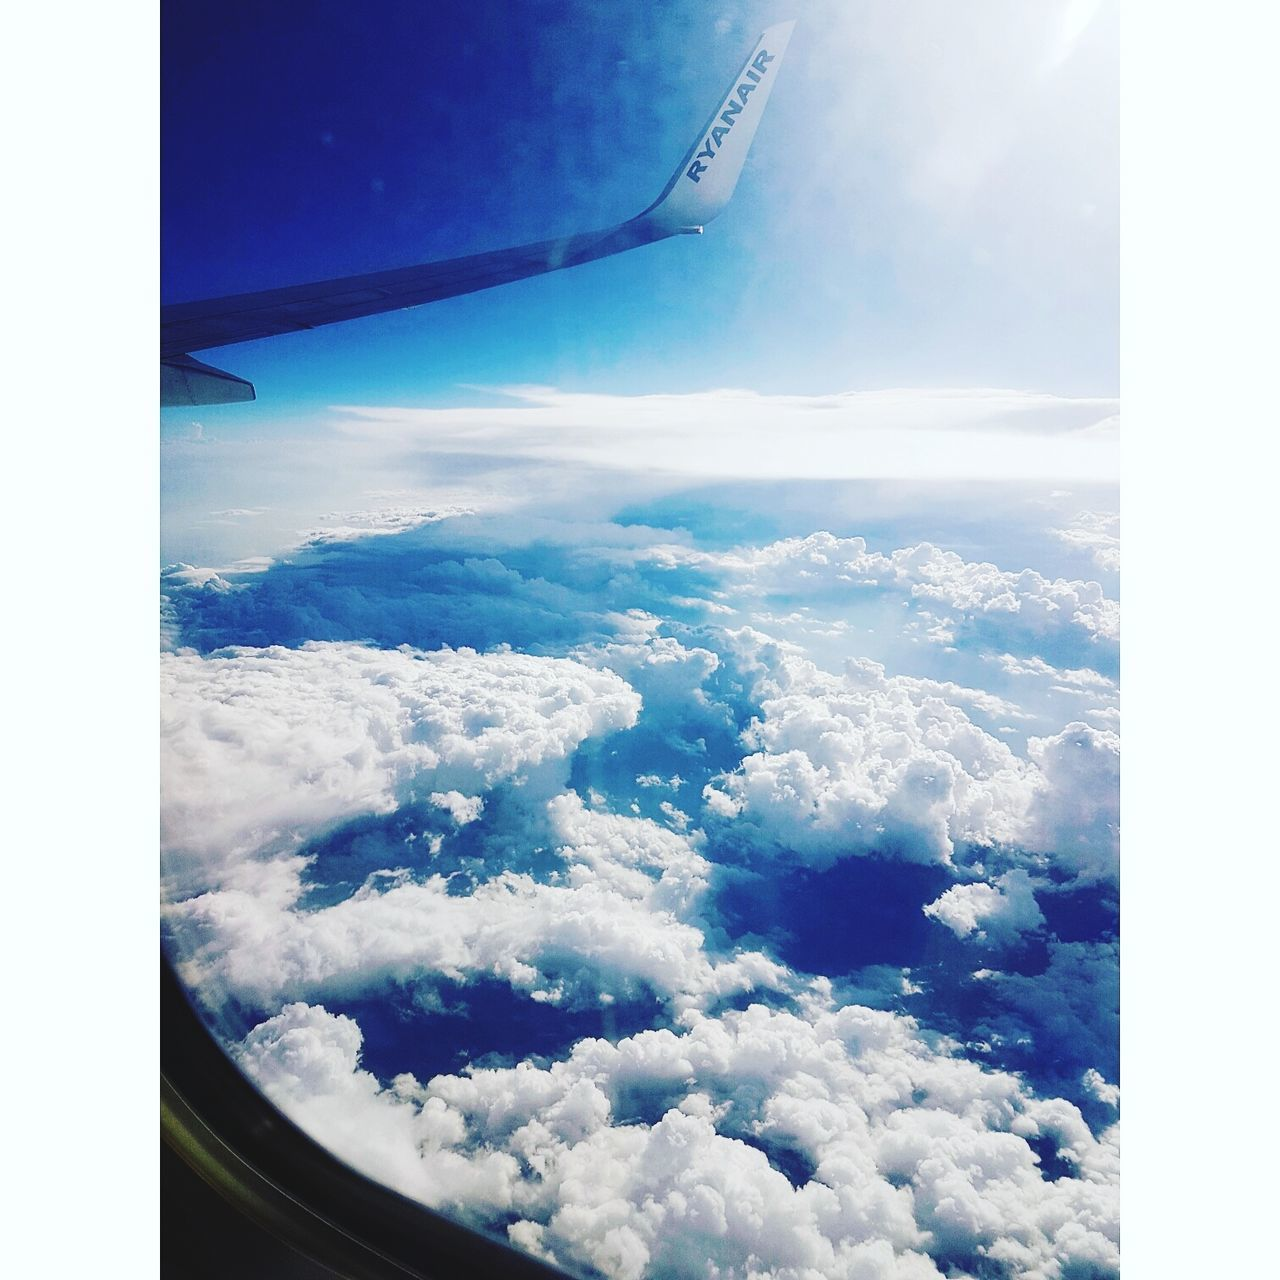 airplane, transportation, cloud - sky, sky, aerial view, scenics, mode of transport, air vehicle, flying, nature, beauty in nature, travel, journey, cloudscape, tranquil scene, airplane wing, blue, tranquility, no people, day, outdoors, mid-air, aircraft wing, landscape, vehicle part